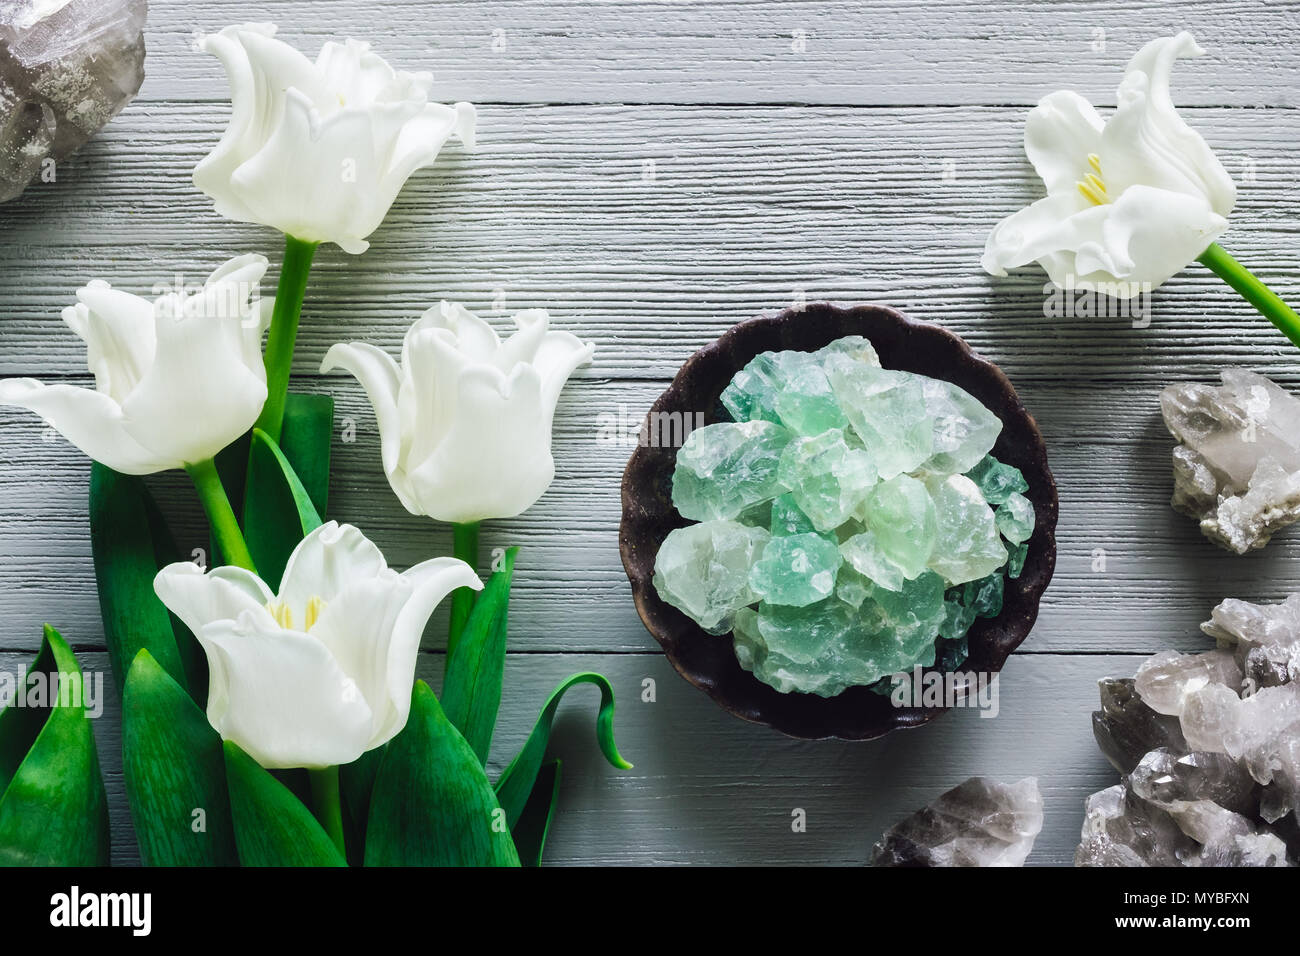 White Tulips with Quartz and Fluorite Crystals on Grey Table - Stock Image